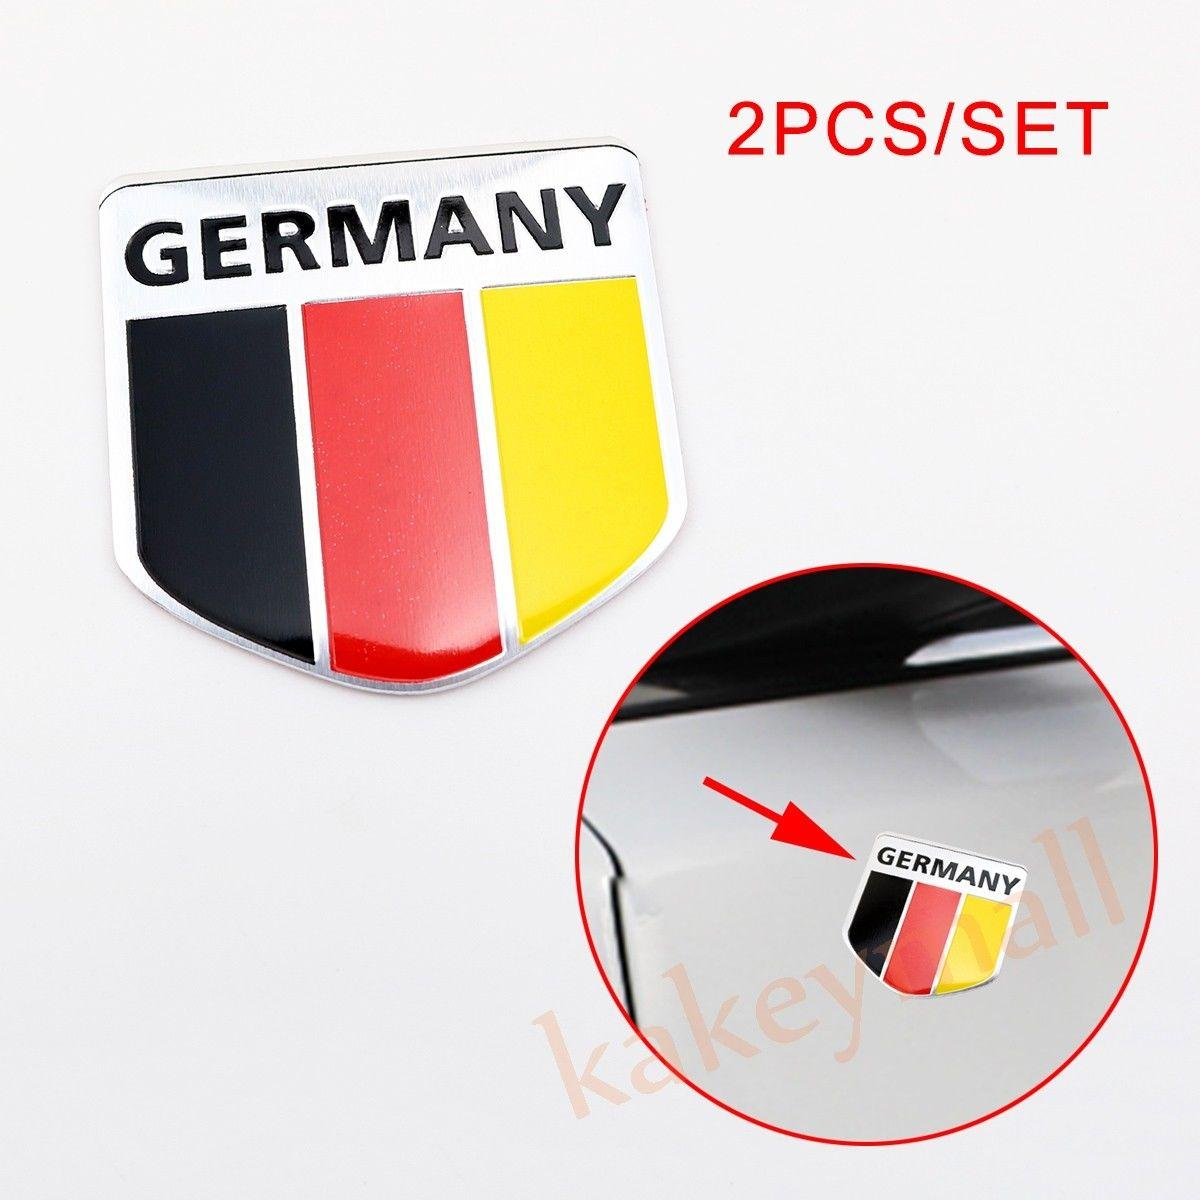 German Red Cross Badge Car Grill Emblem Logos Metal Enamled Car Badge Keep You Fit All The Time Badges & Mascots